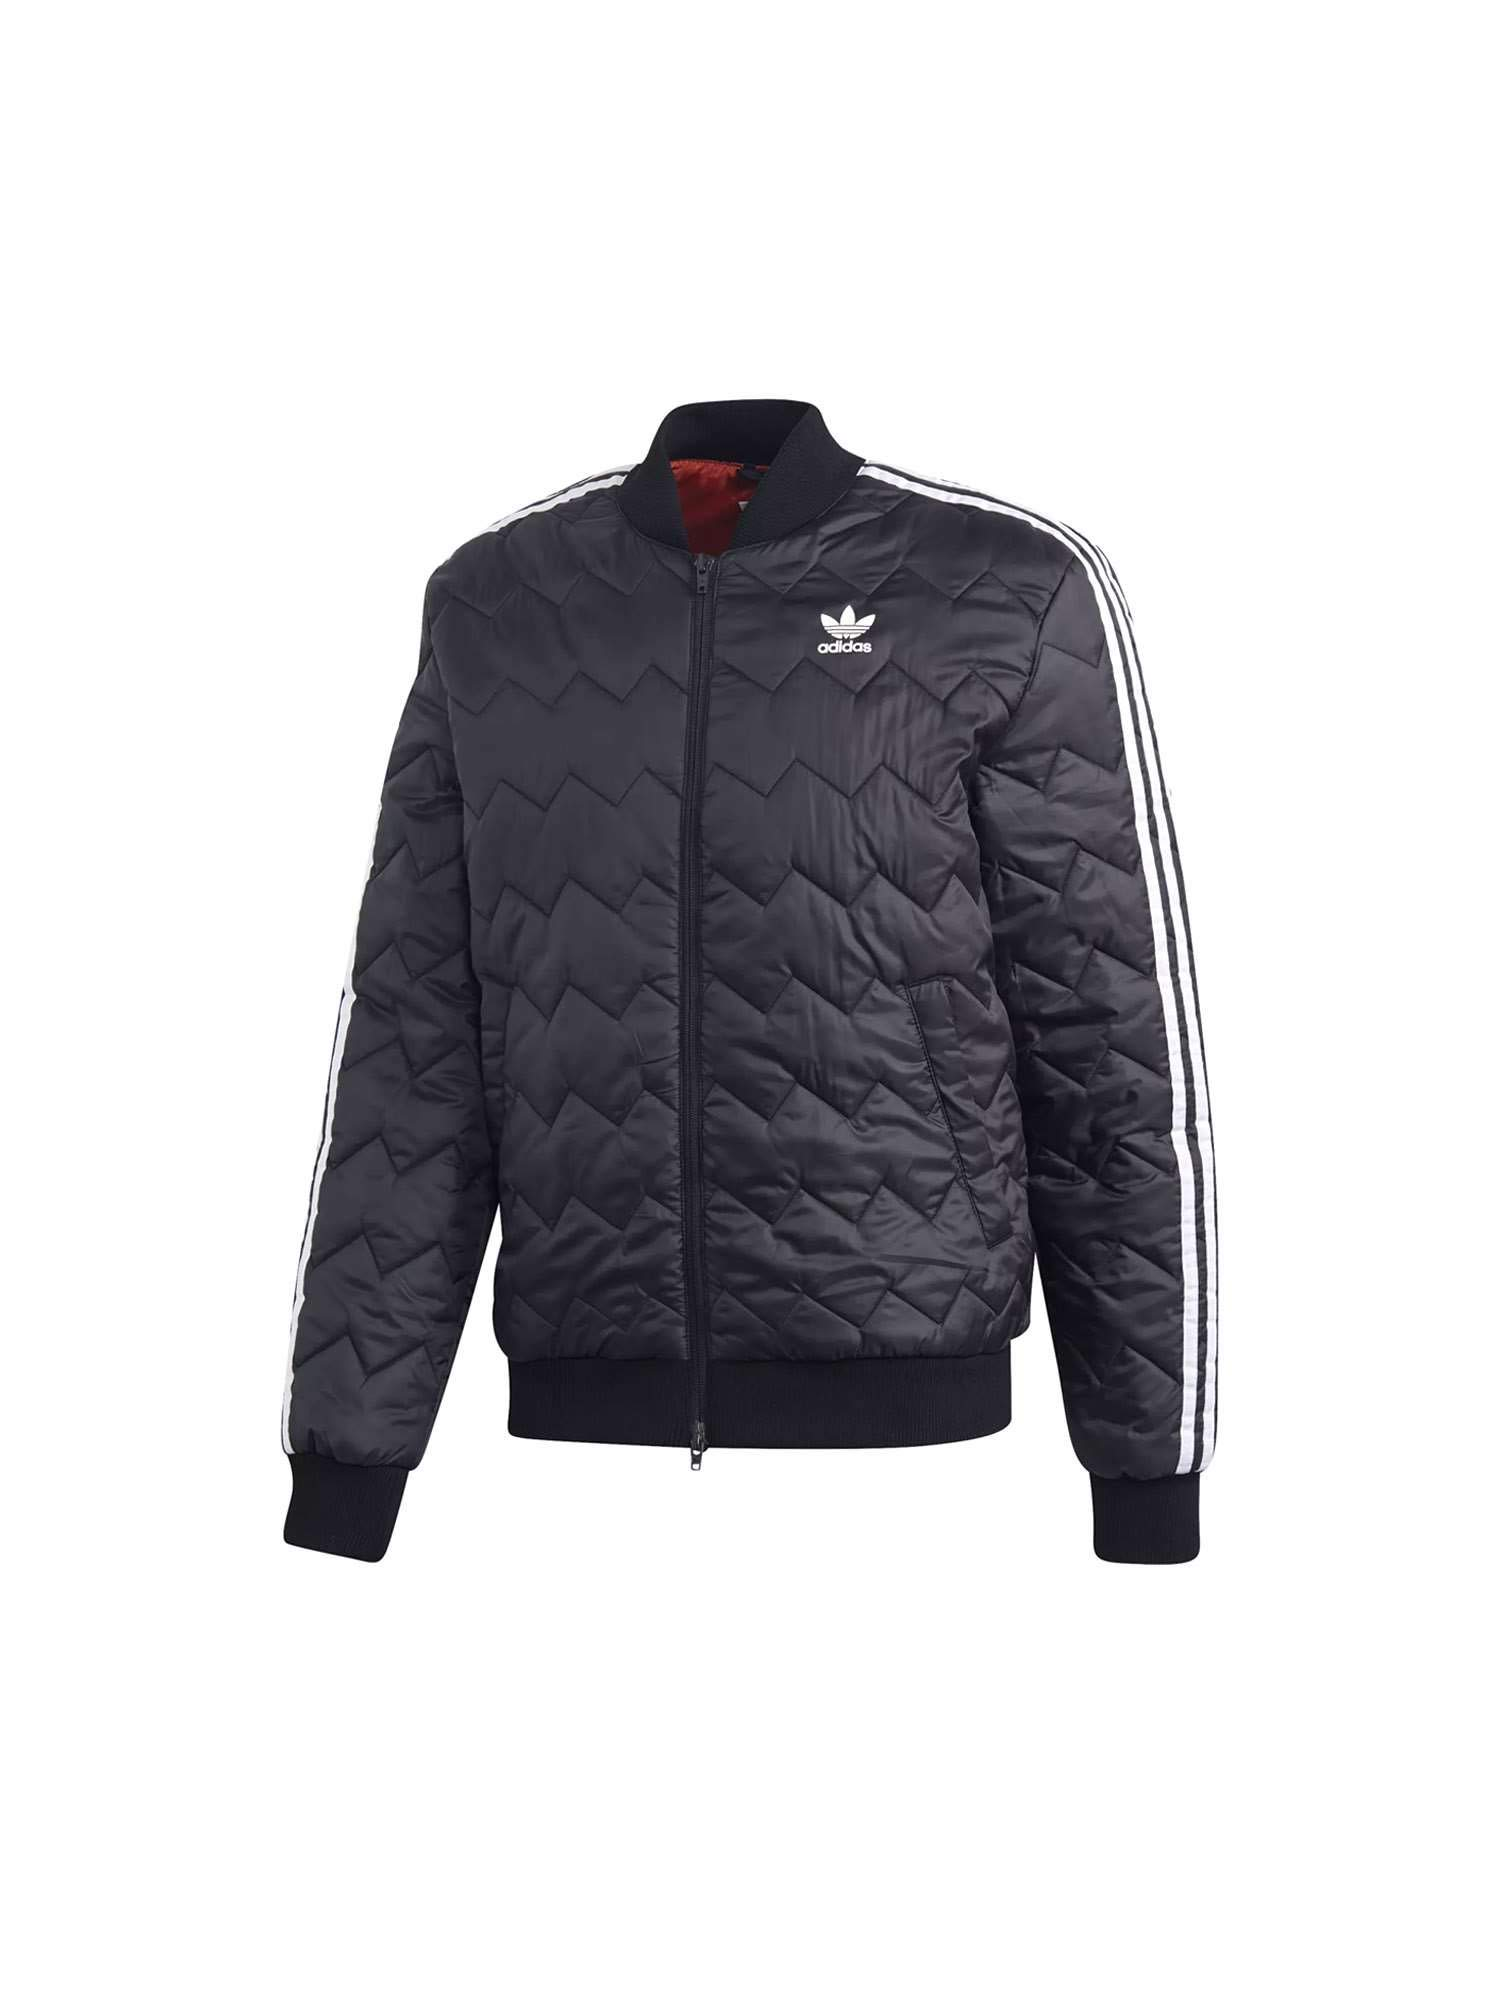 5edf8caf7d adidas SST Quilted, Giacca Sportiva Uomo - Face Shop